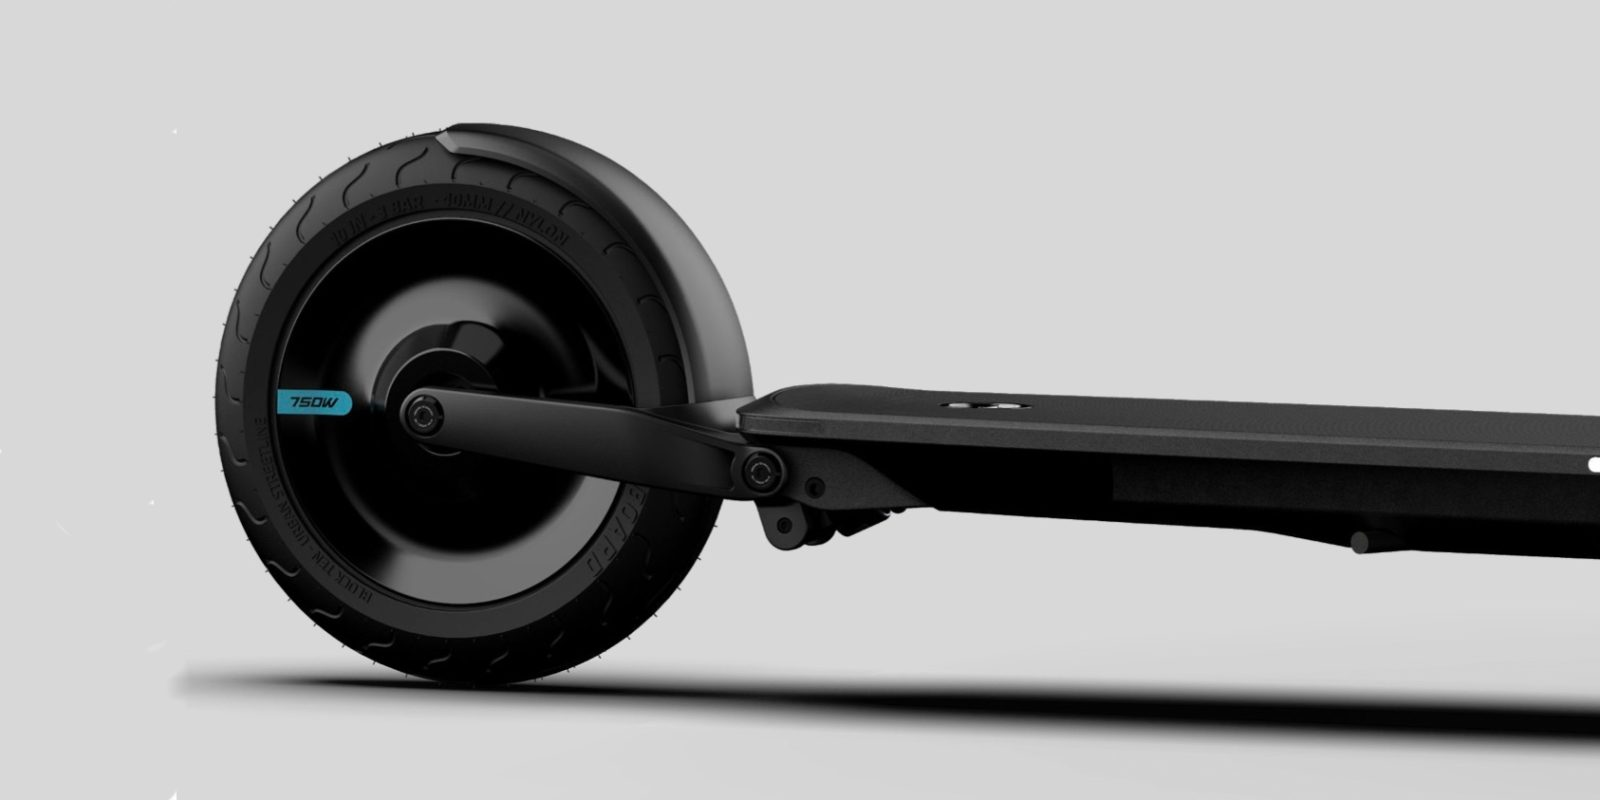 Inboard unveils their new 750W electric scooter and takes